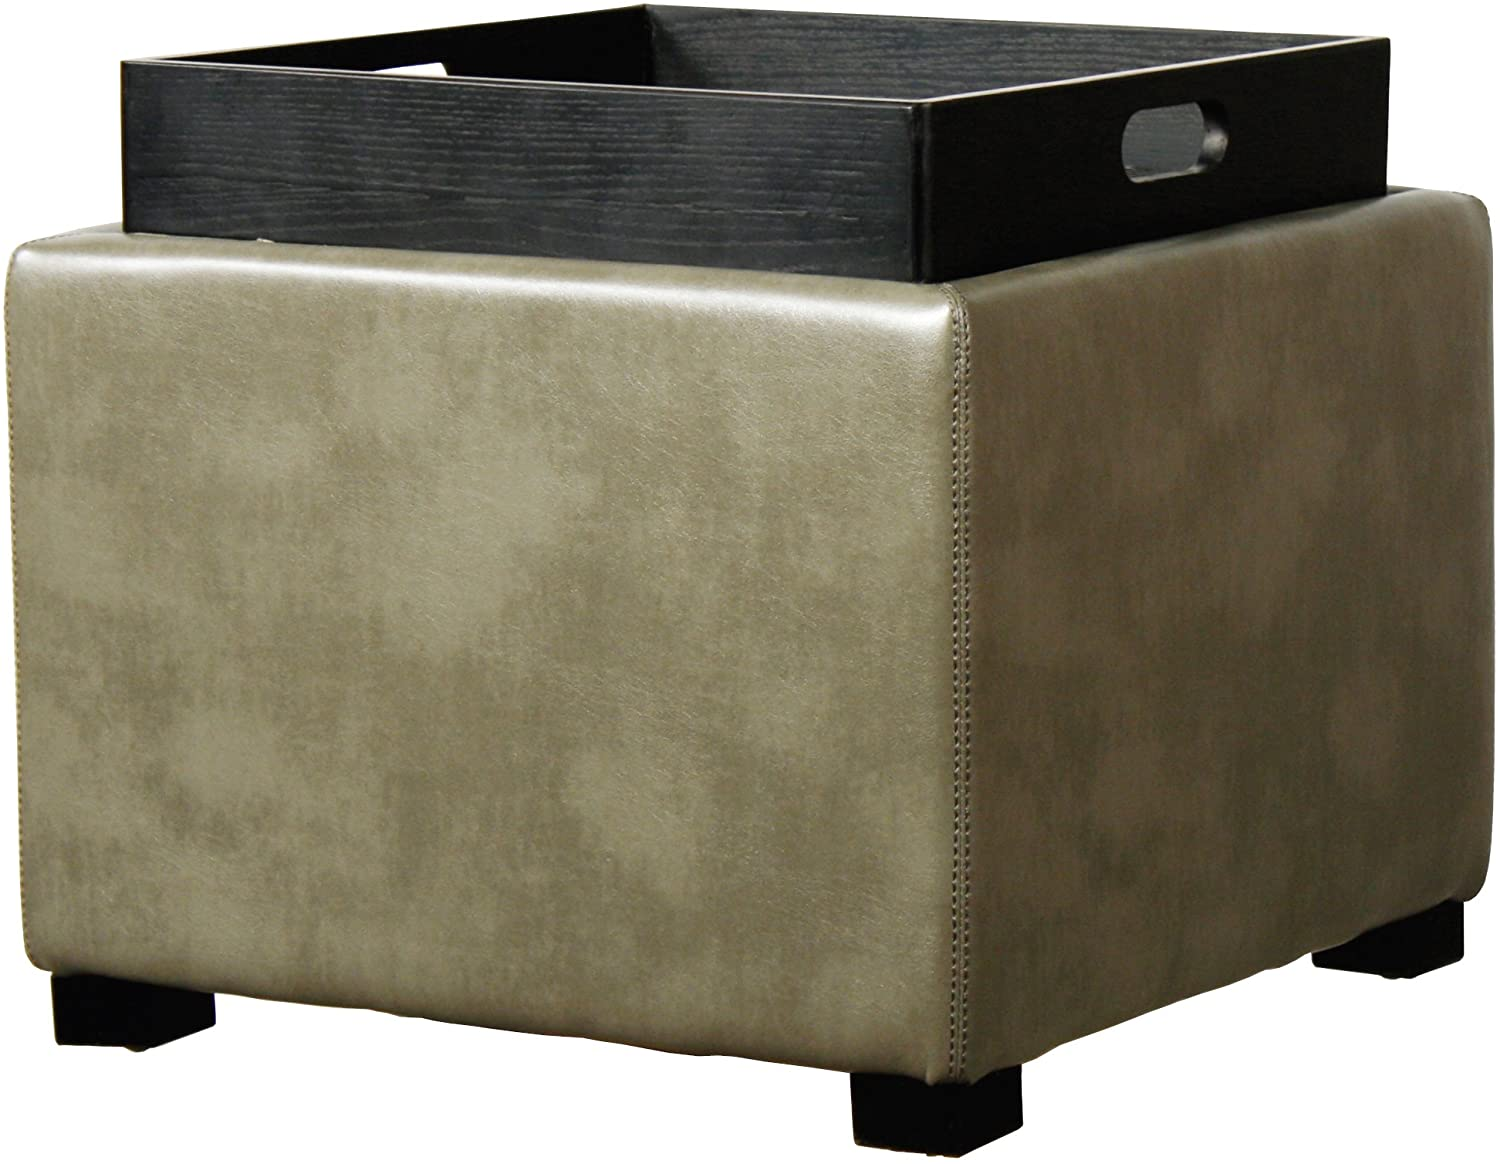 New Pacific Direct Cameron Square Bonded Leather Ottoman with Tray,Black Legs,Quarry Gray